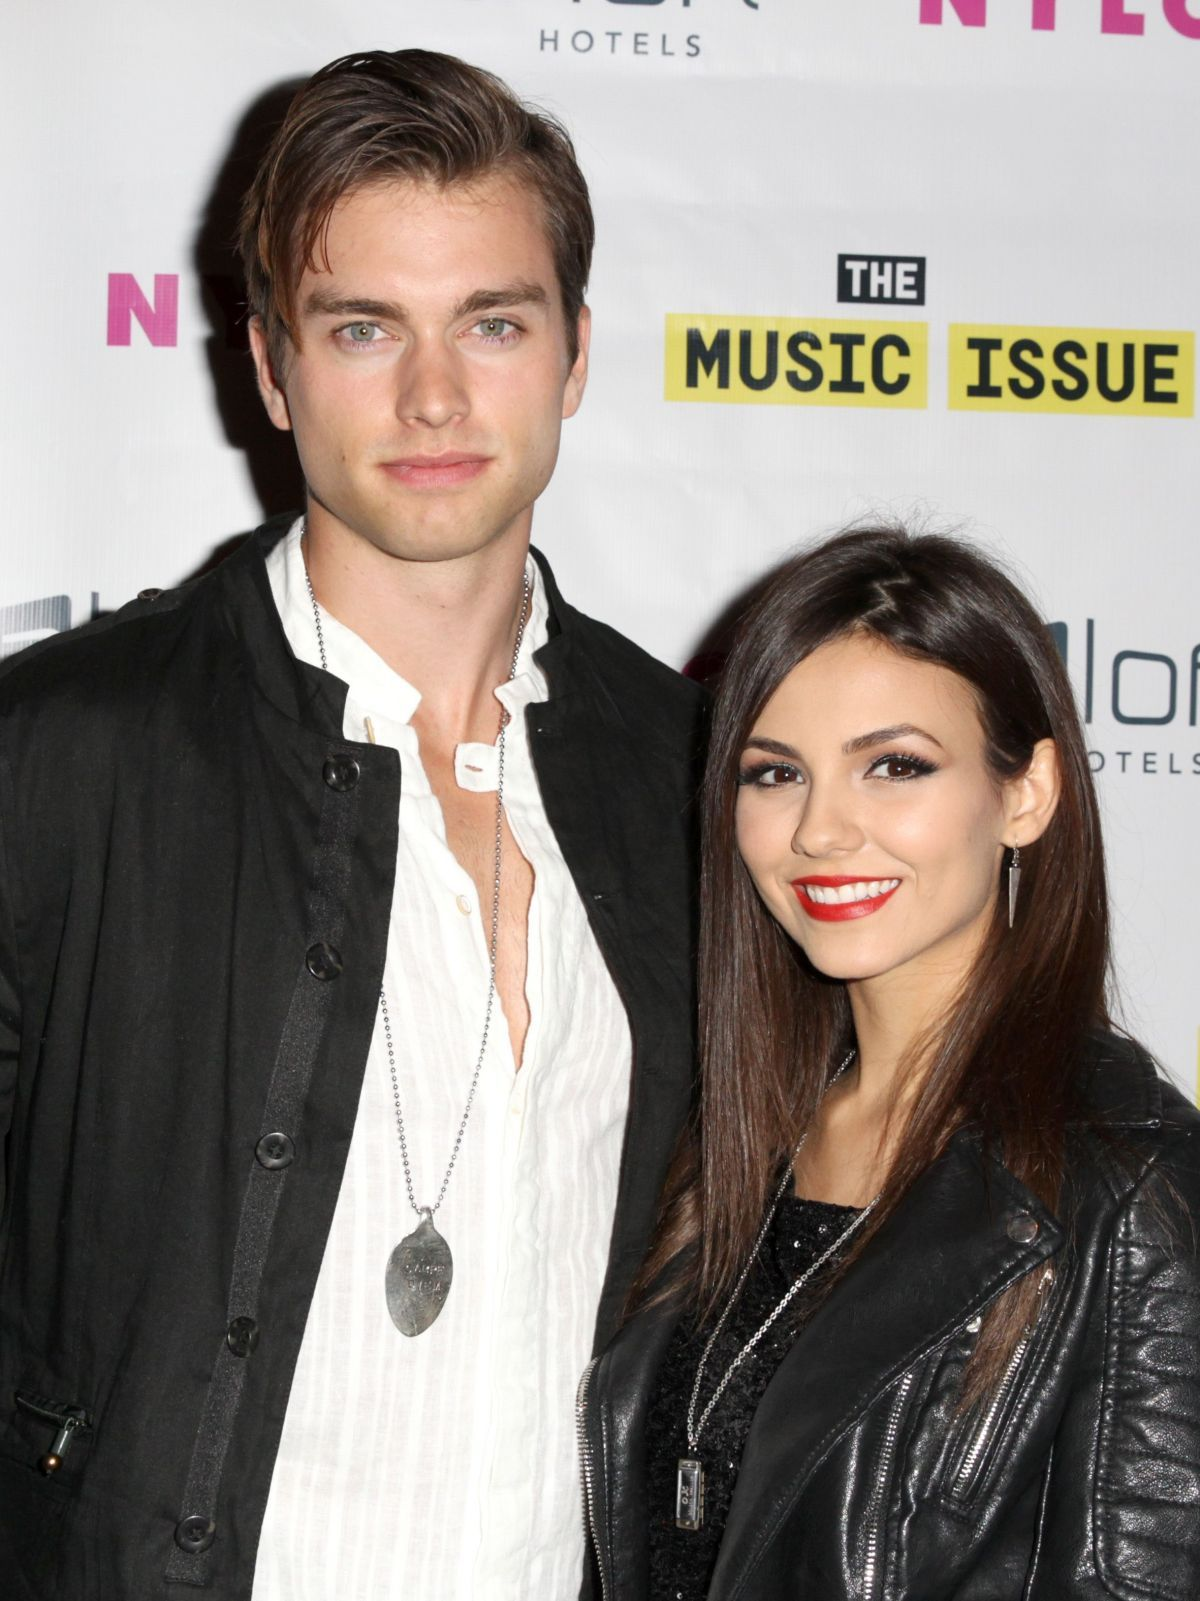 Victoria Justice At 2014 Nylon Magazine Music Issue Party In La